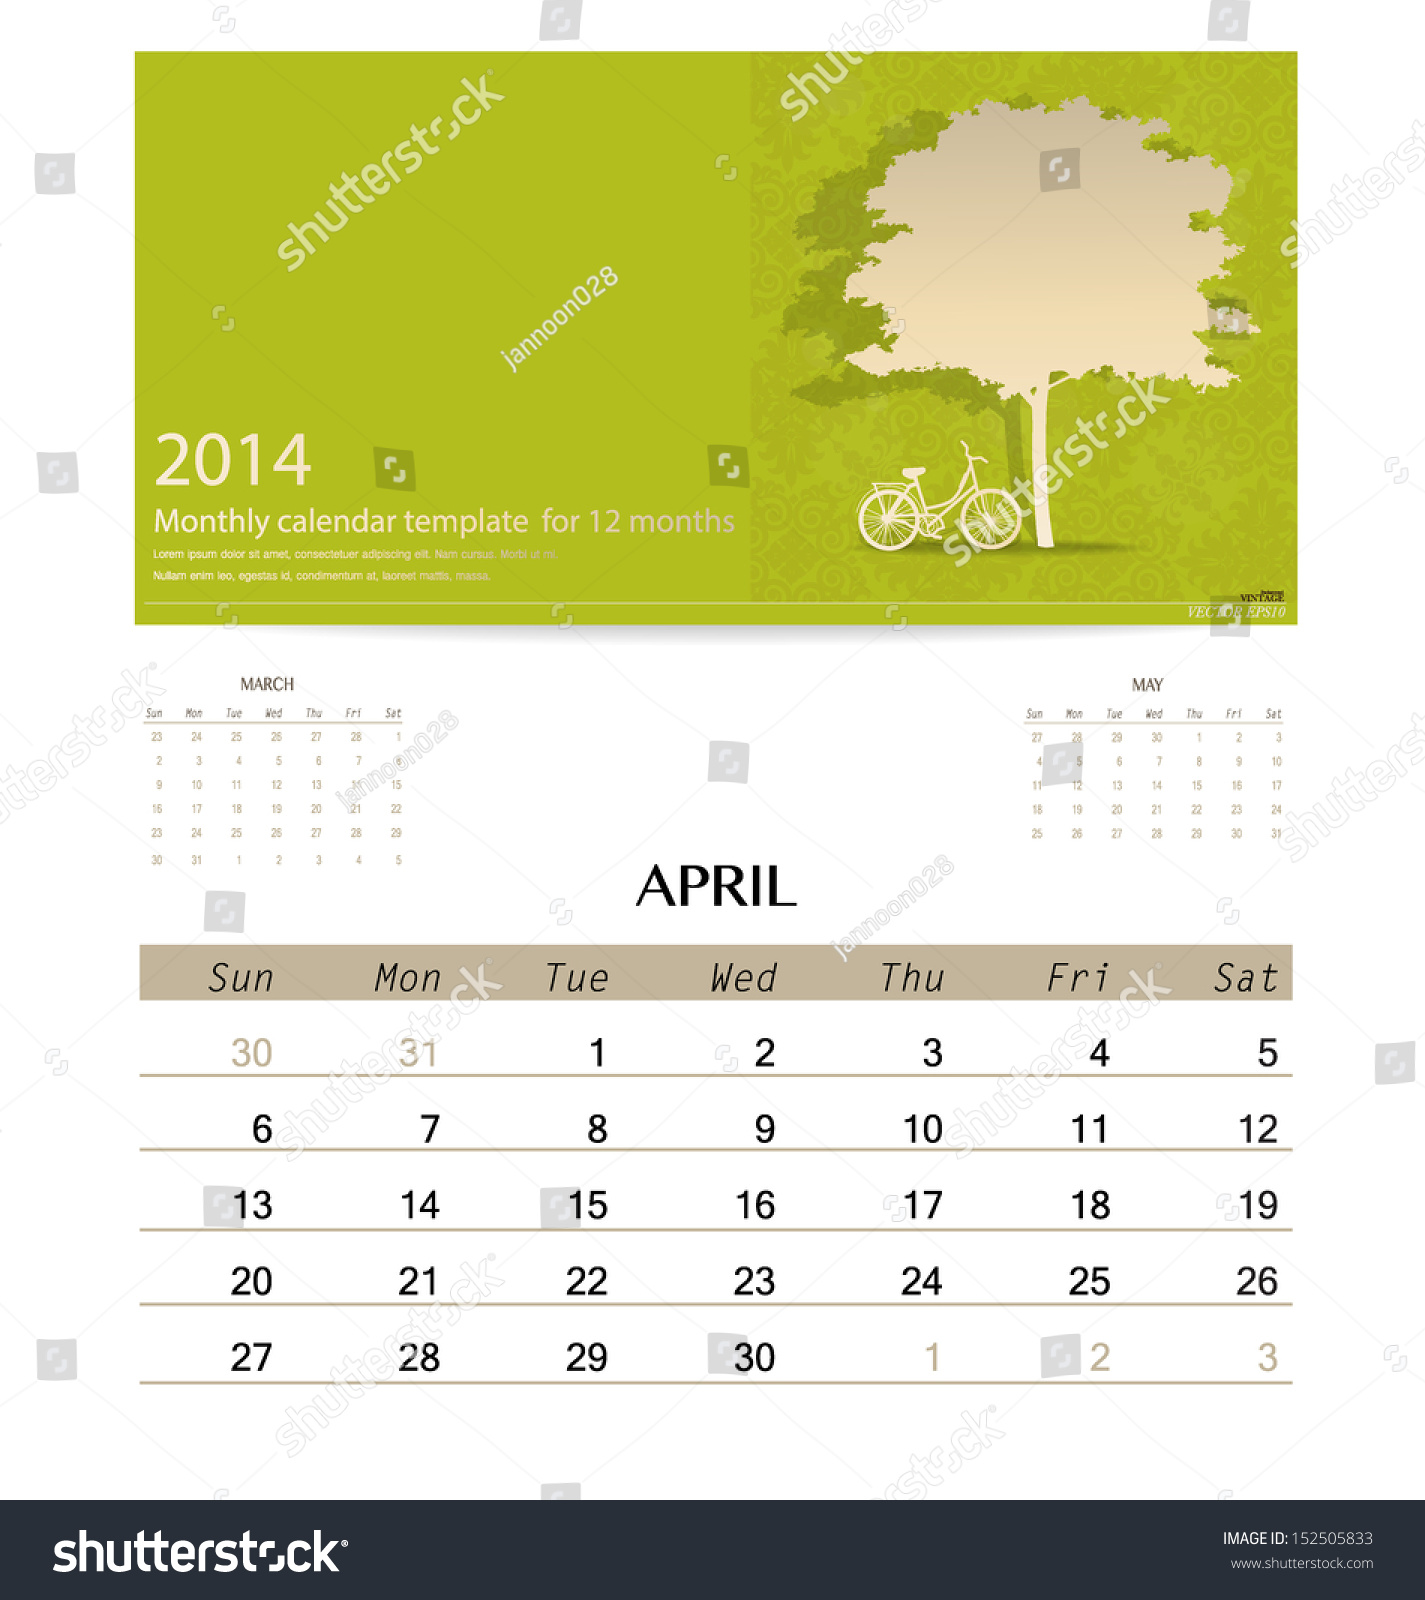 Calendar April Vector : Calendar monthly template for april vector